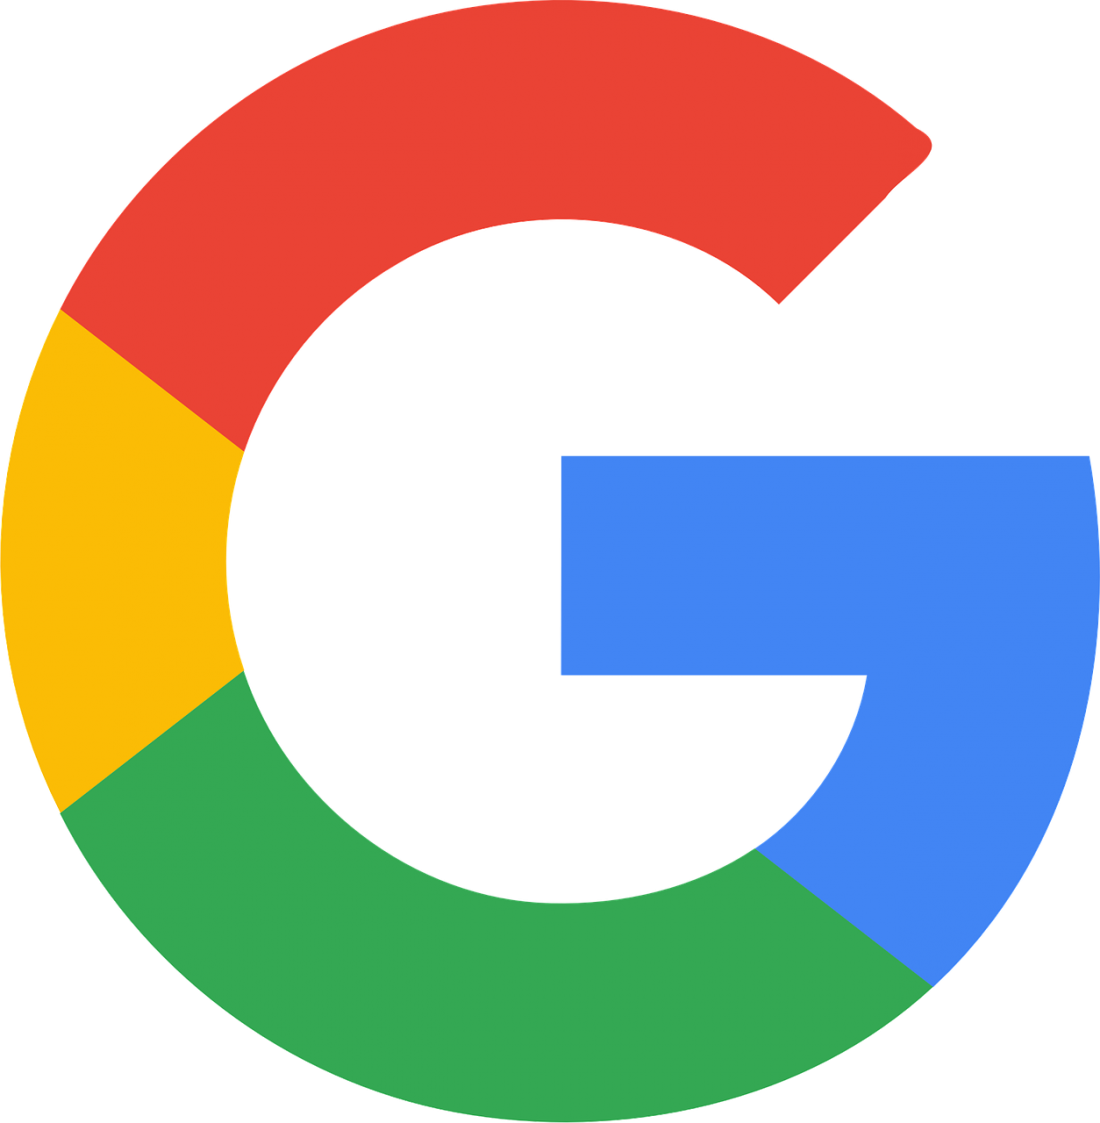 Google logo png 2016. Pushnationfest org will be